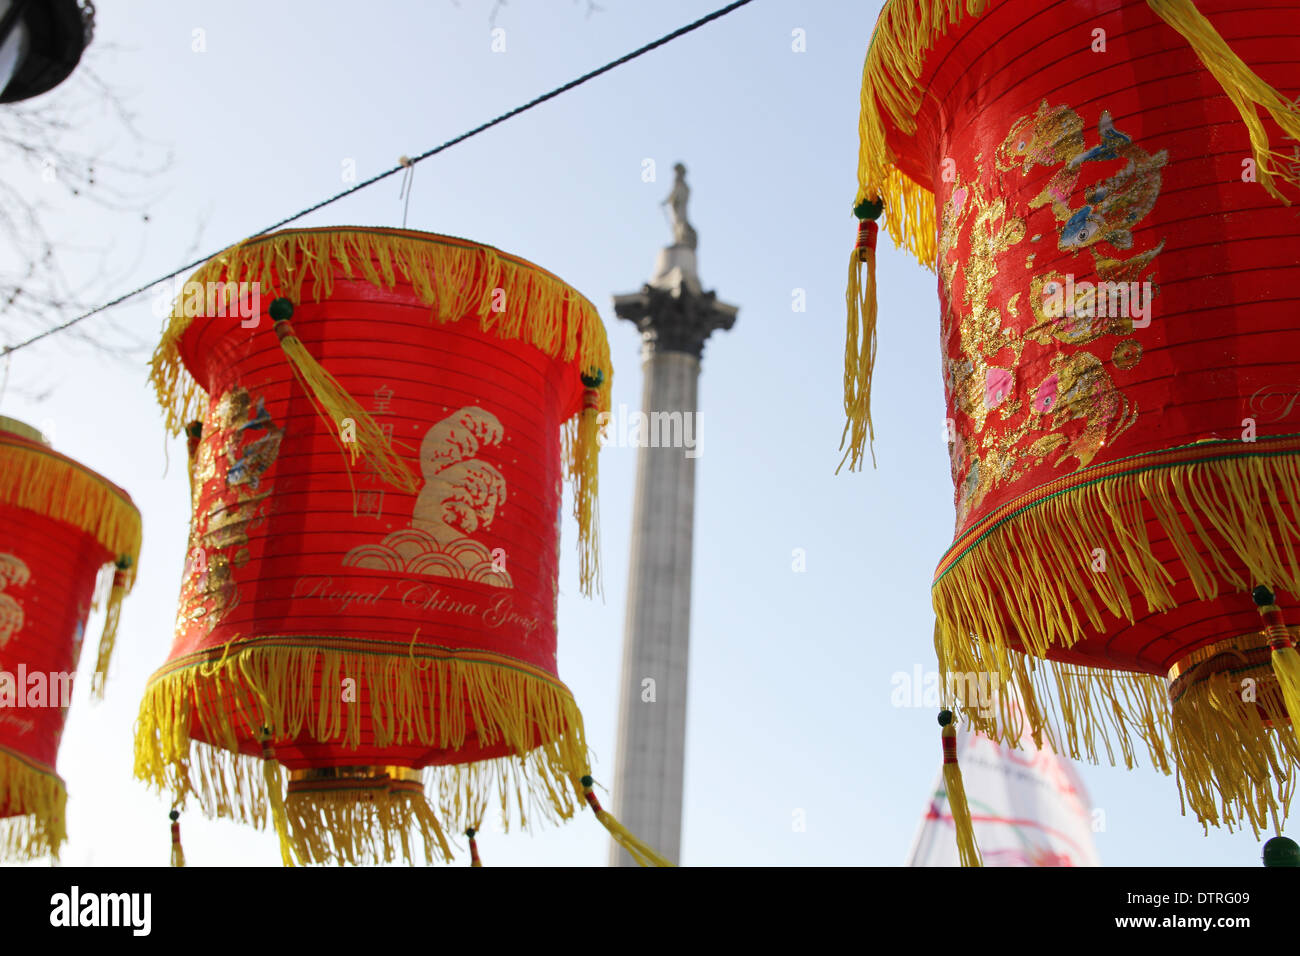 Chinese lanterns on display for Chinese new year in Trafalgar square